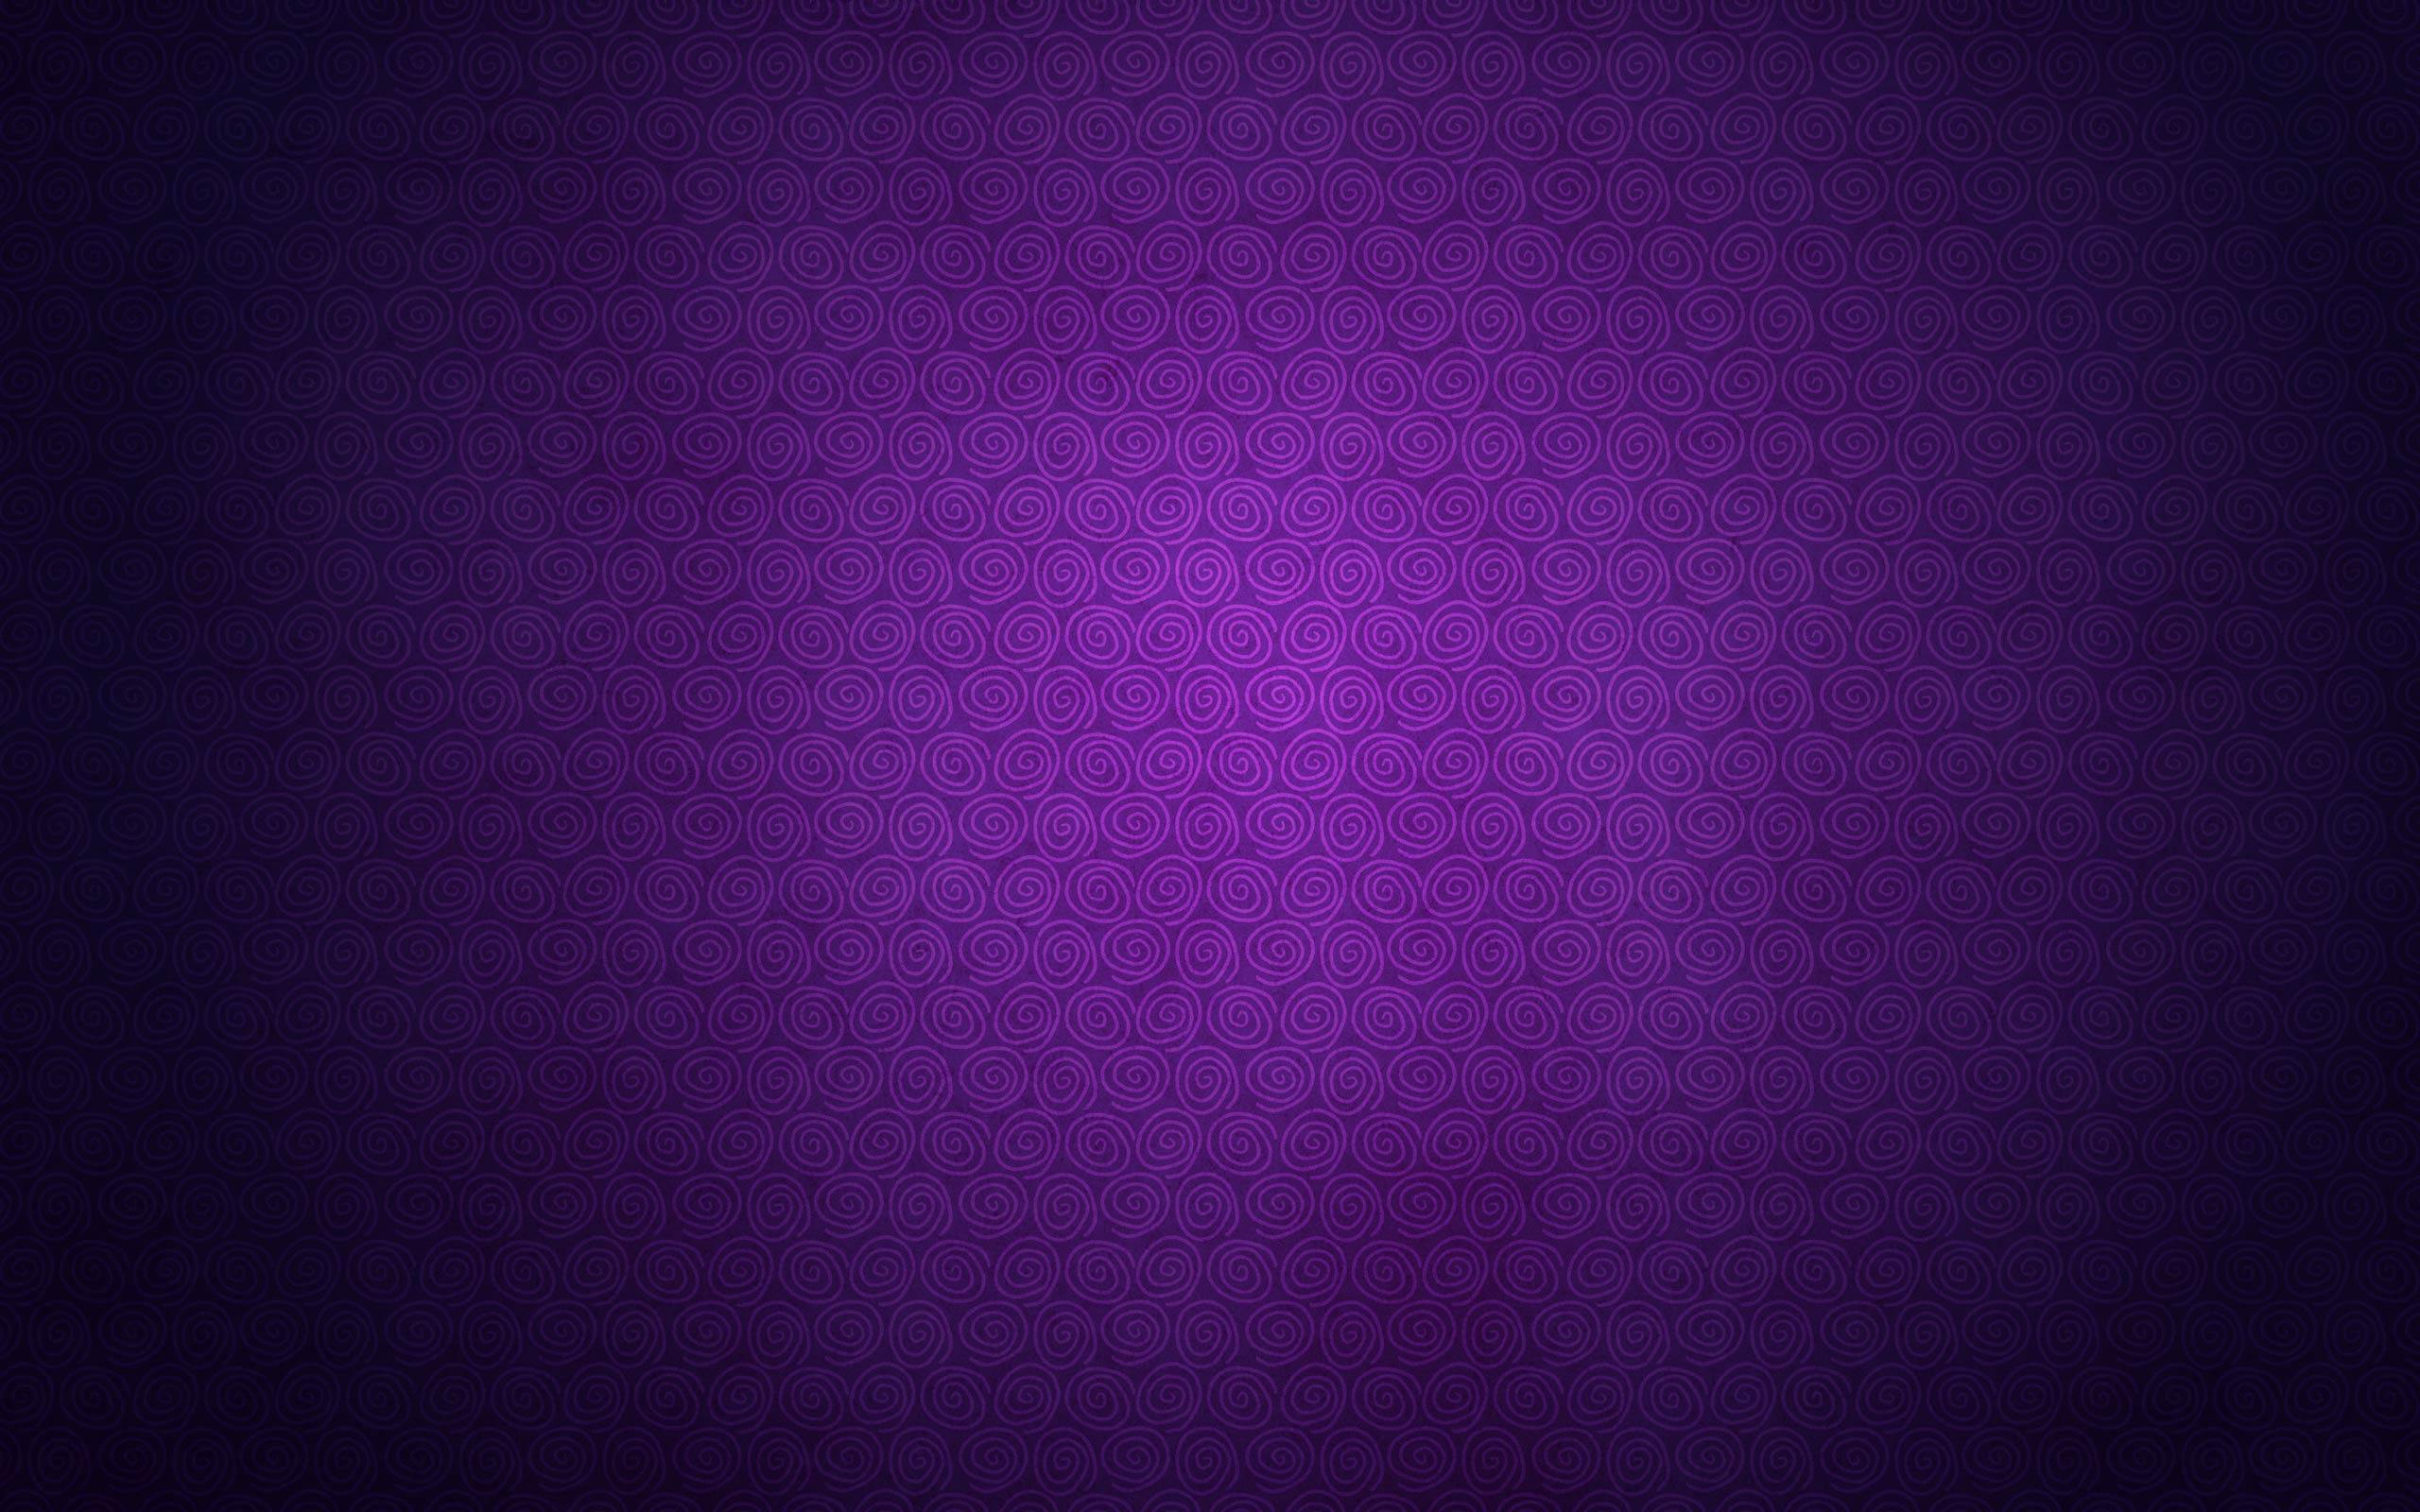 purple backgrounds wallpapers wallpaper cave